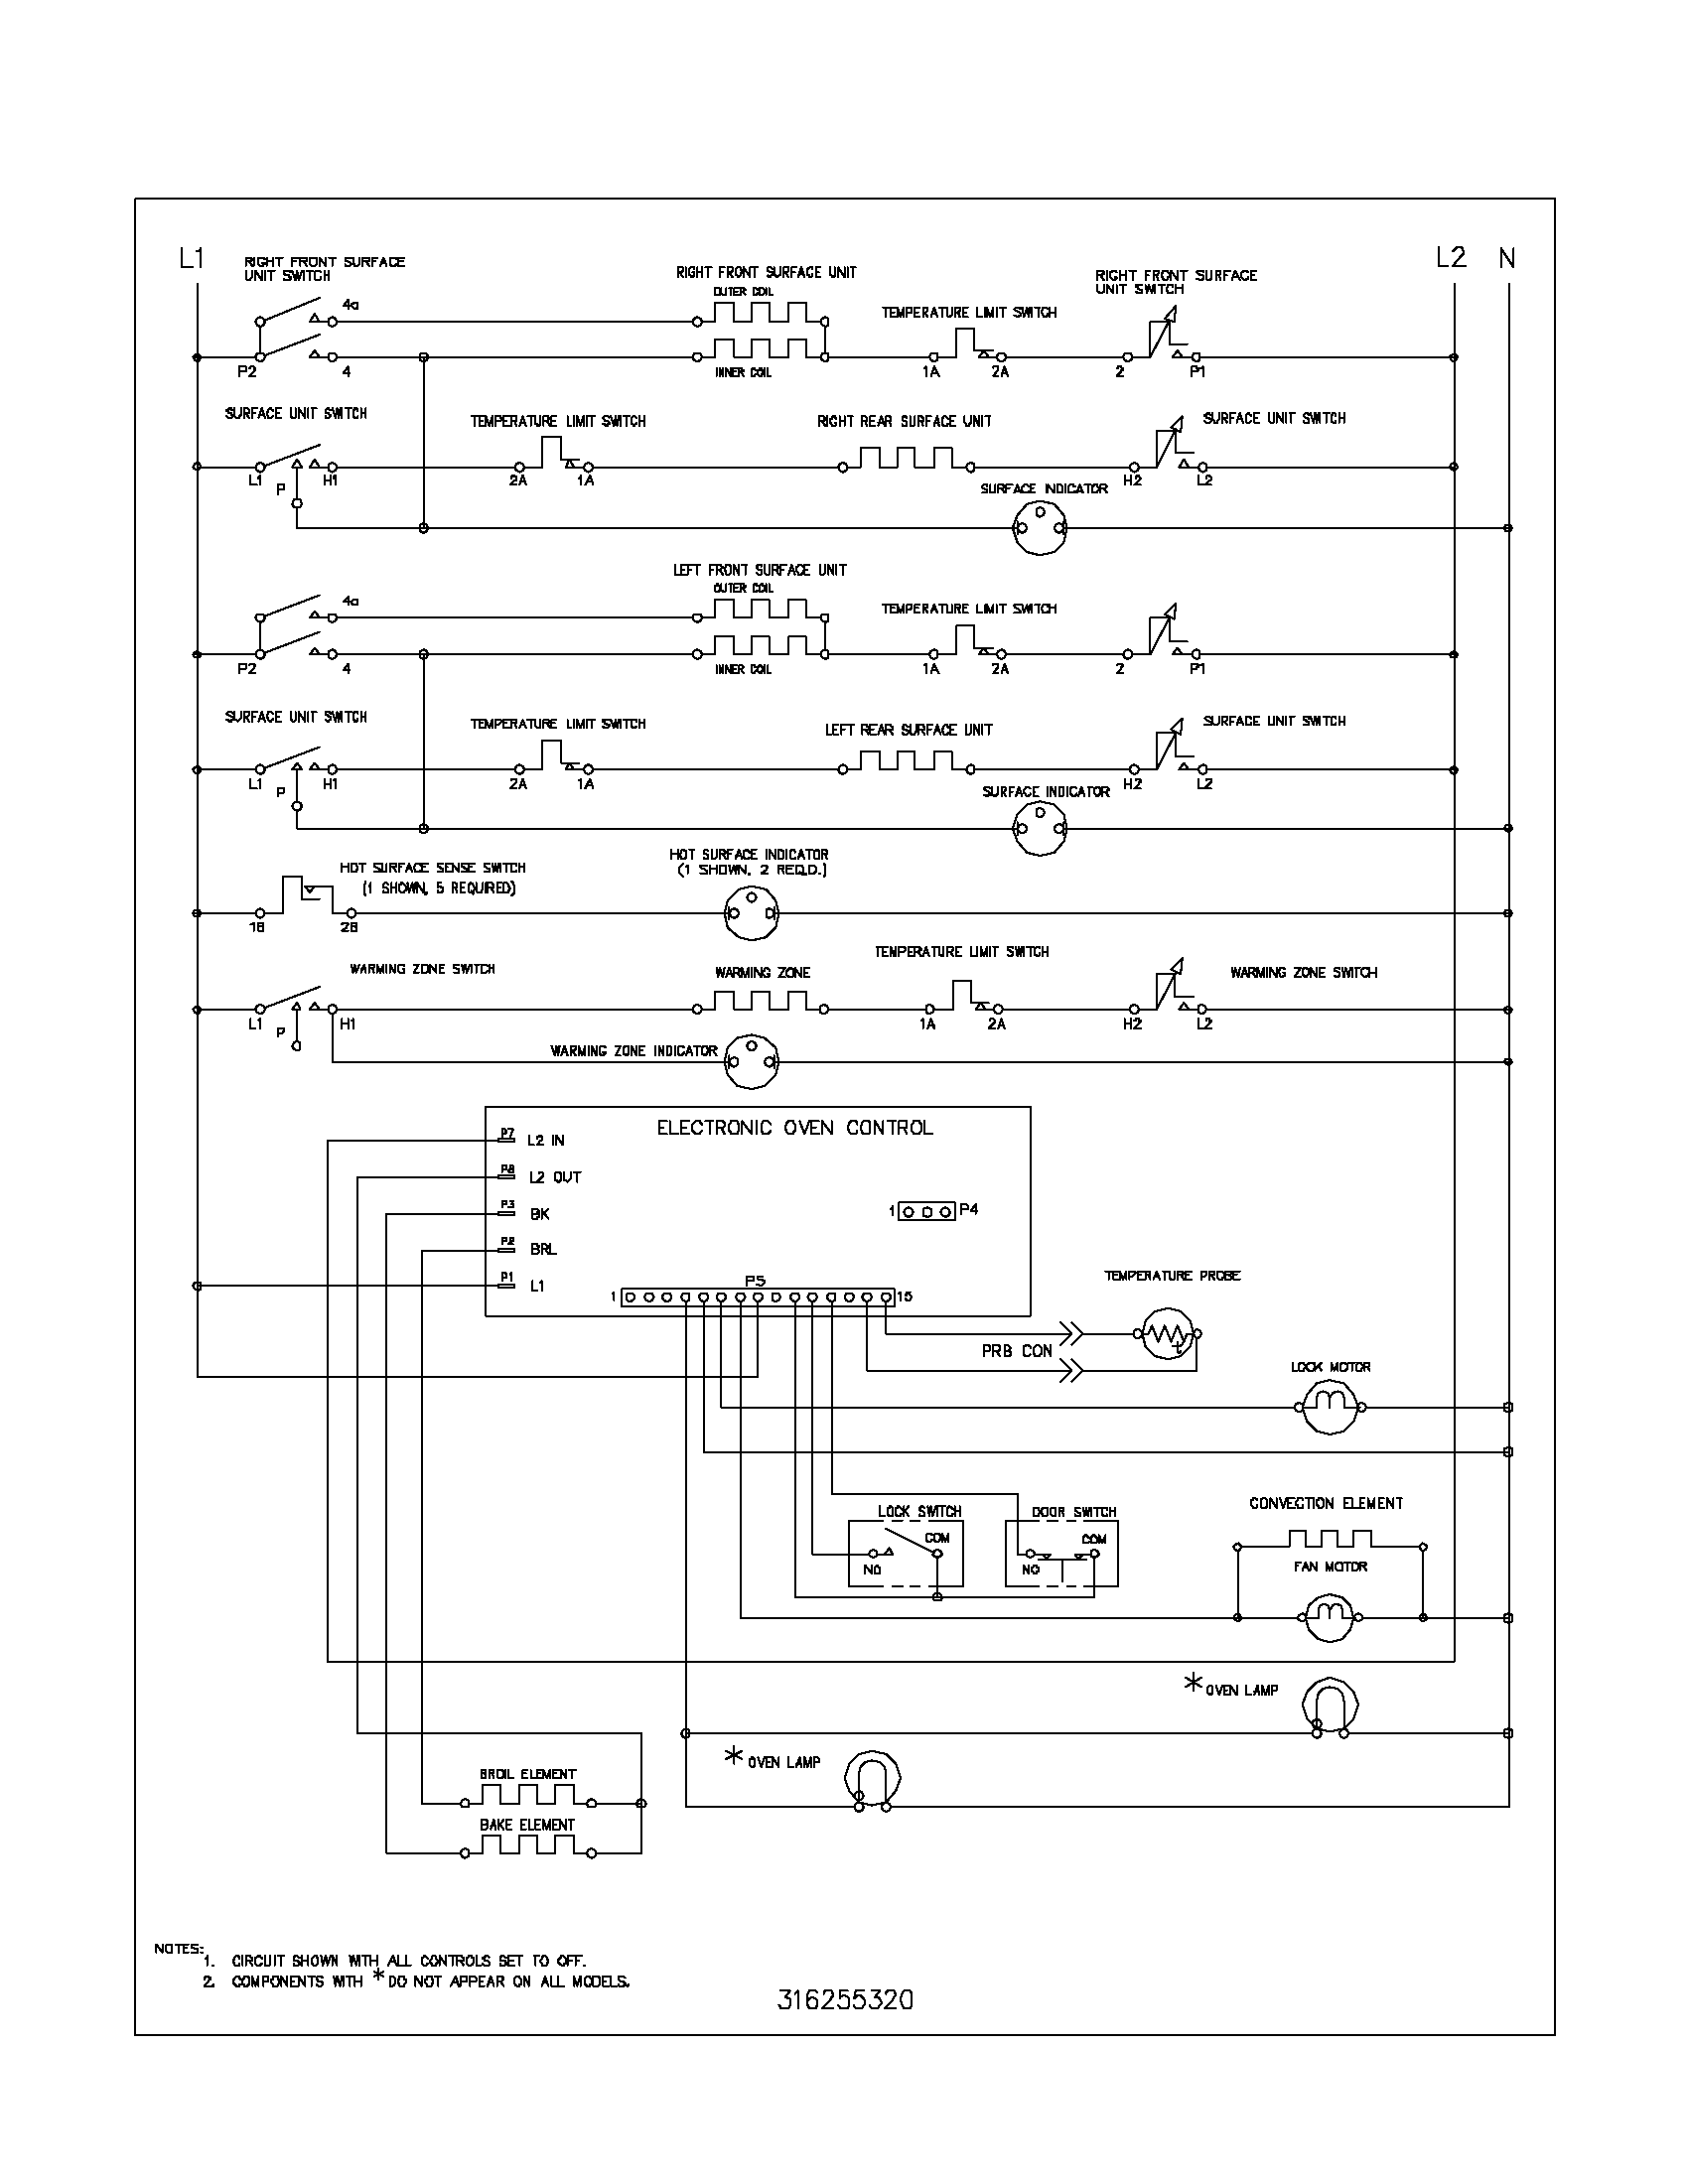 wiring schematic parts whirlpool fefl88acc electric range timer stove clocks and hotpoint oven bake element wiring diagram at honlapkeszites.co